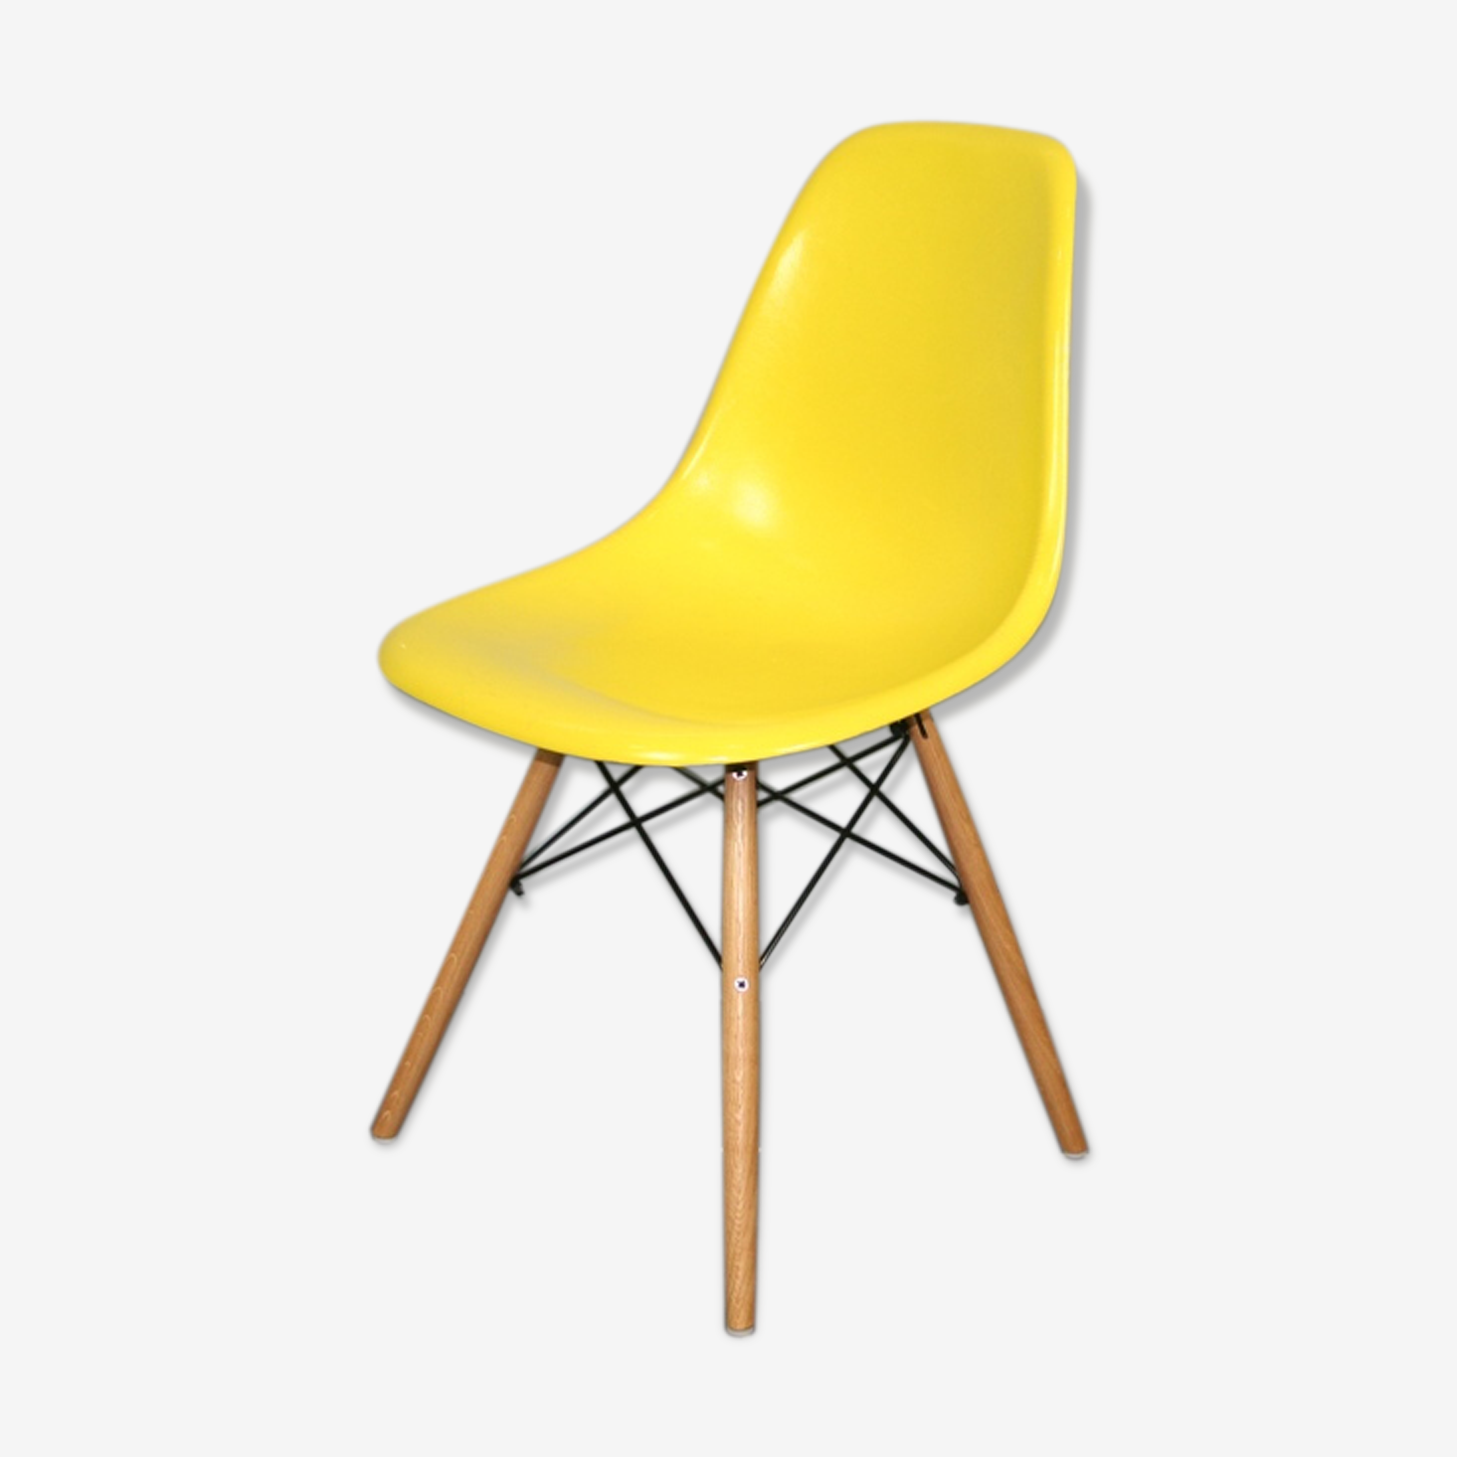 Bright yellow dsw chair Eames Herman Miller vintage